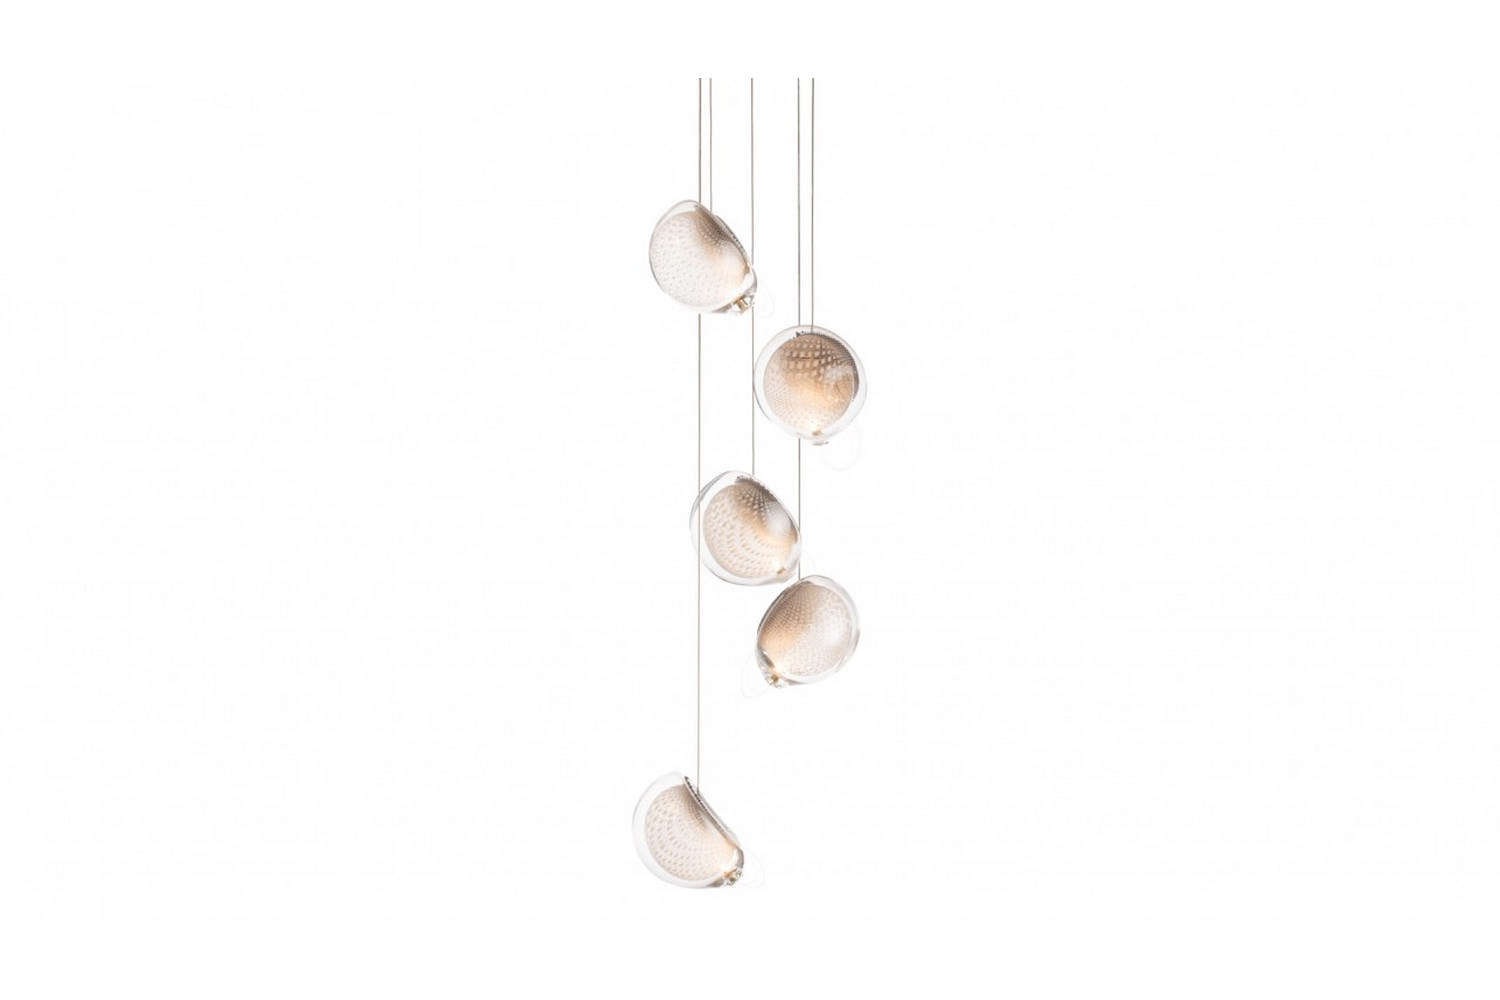 76.5 Suspension Lamp by Omer Arbel for Bocci